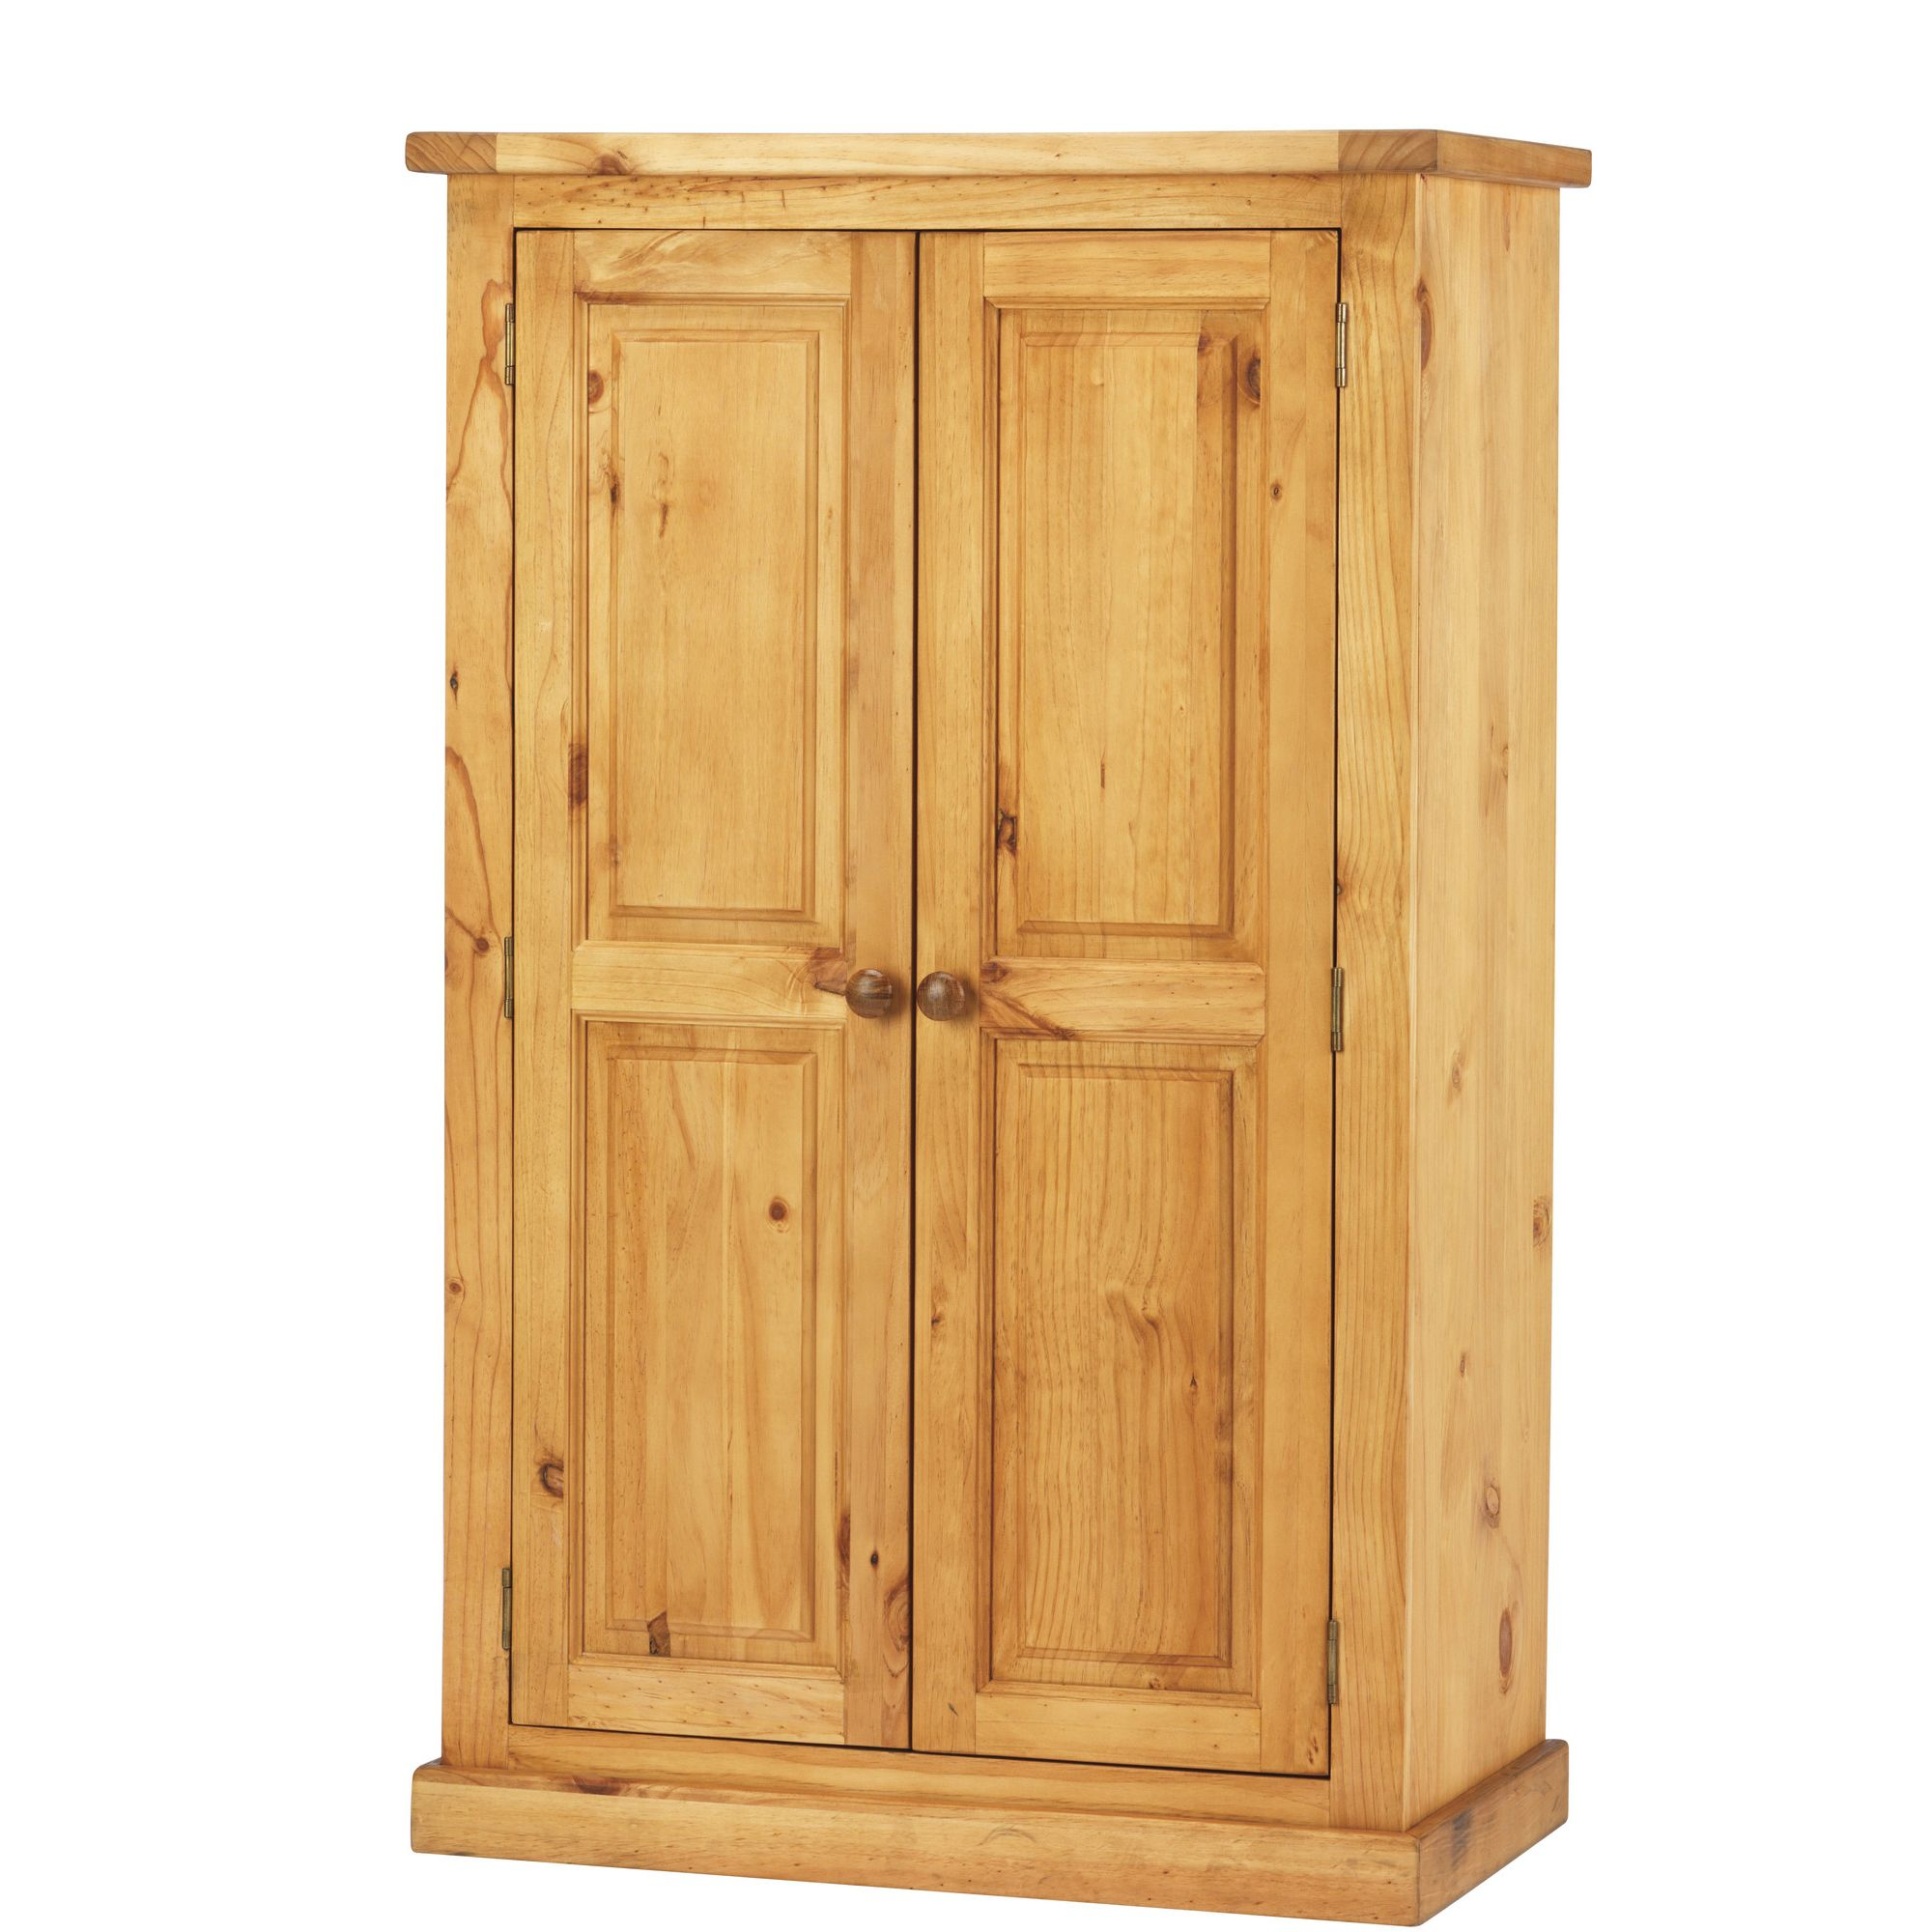 Thorndon Kempton Small Double Wardrobe in Wax at Tesco Direct